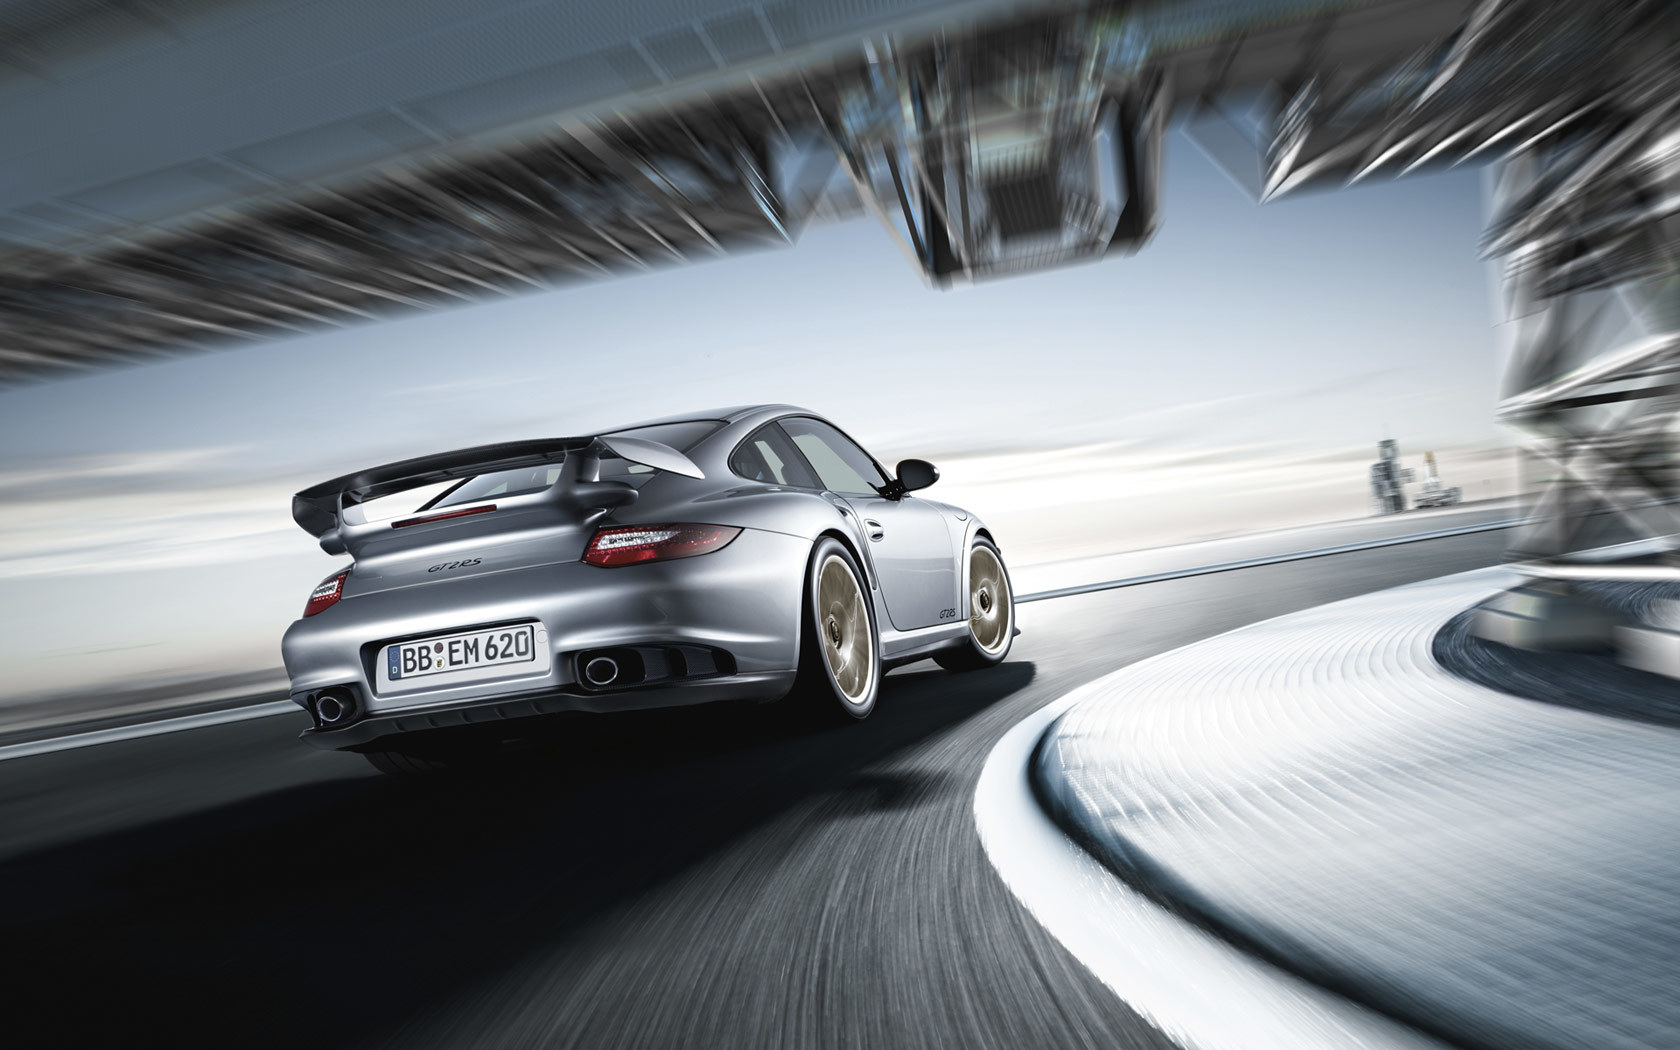 cars motion blur Porsche HD Wallpaper